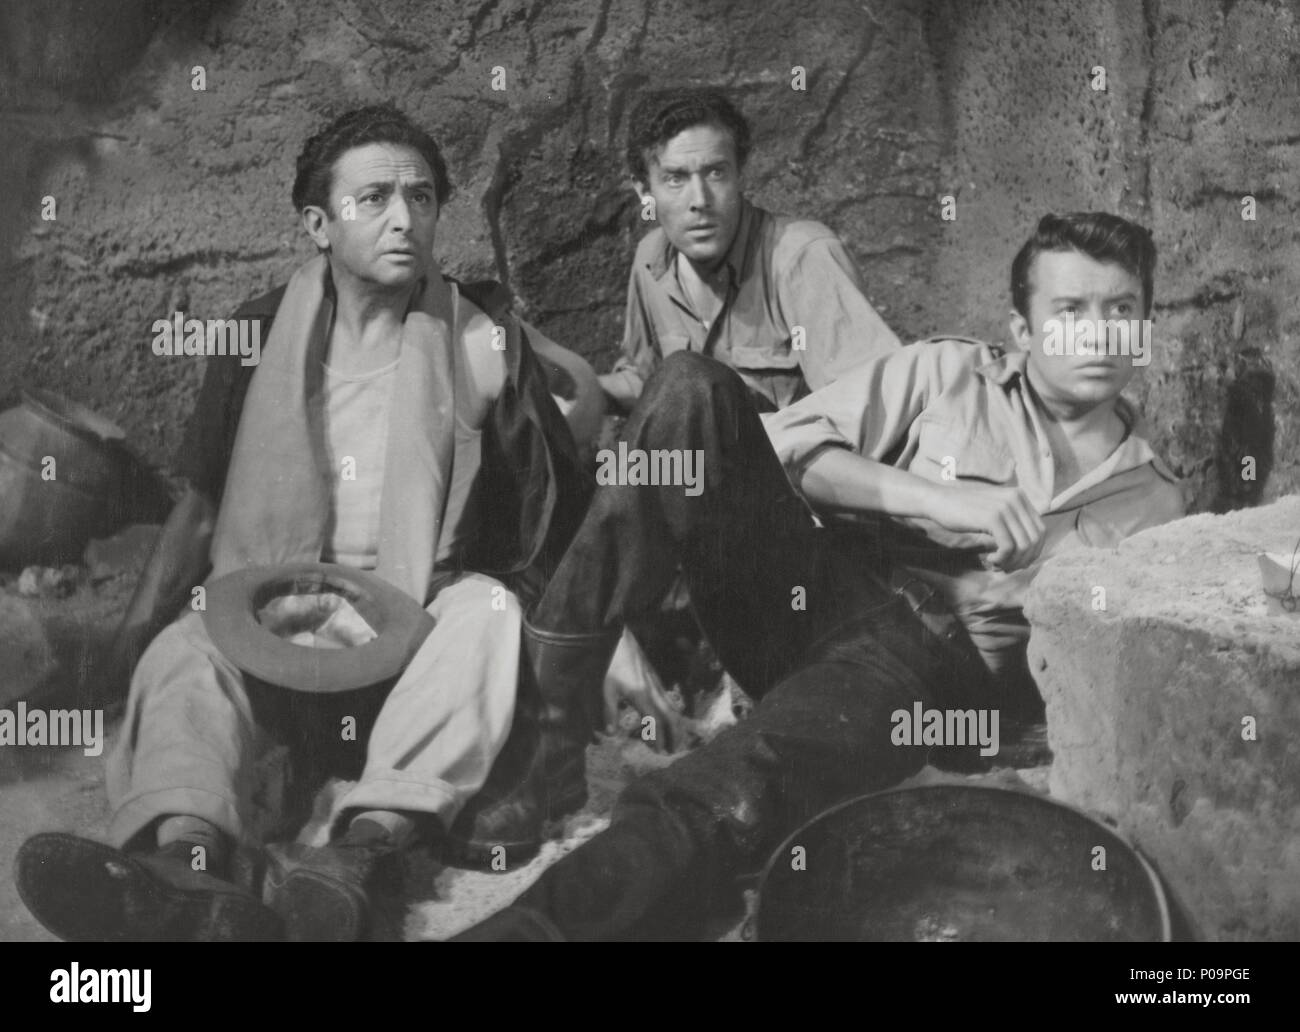 Original Film Title: TRES HOMBRES VAN A MORIR.  English Title: DESERT FIGHTERS.  Film Director: FELICIANO CATALAN.  Year: 1954. - Stock Image